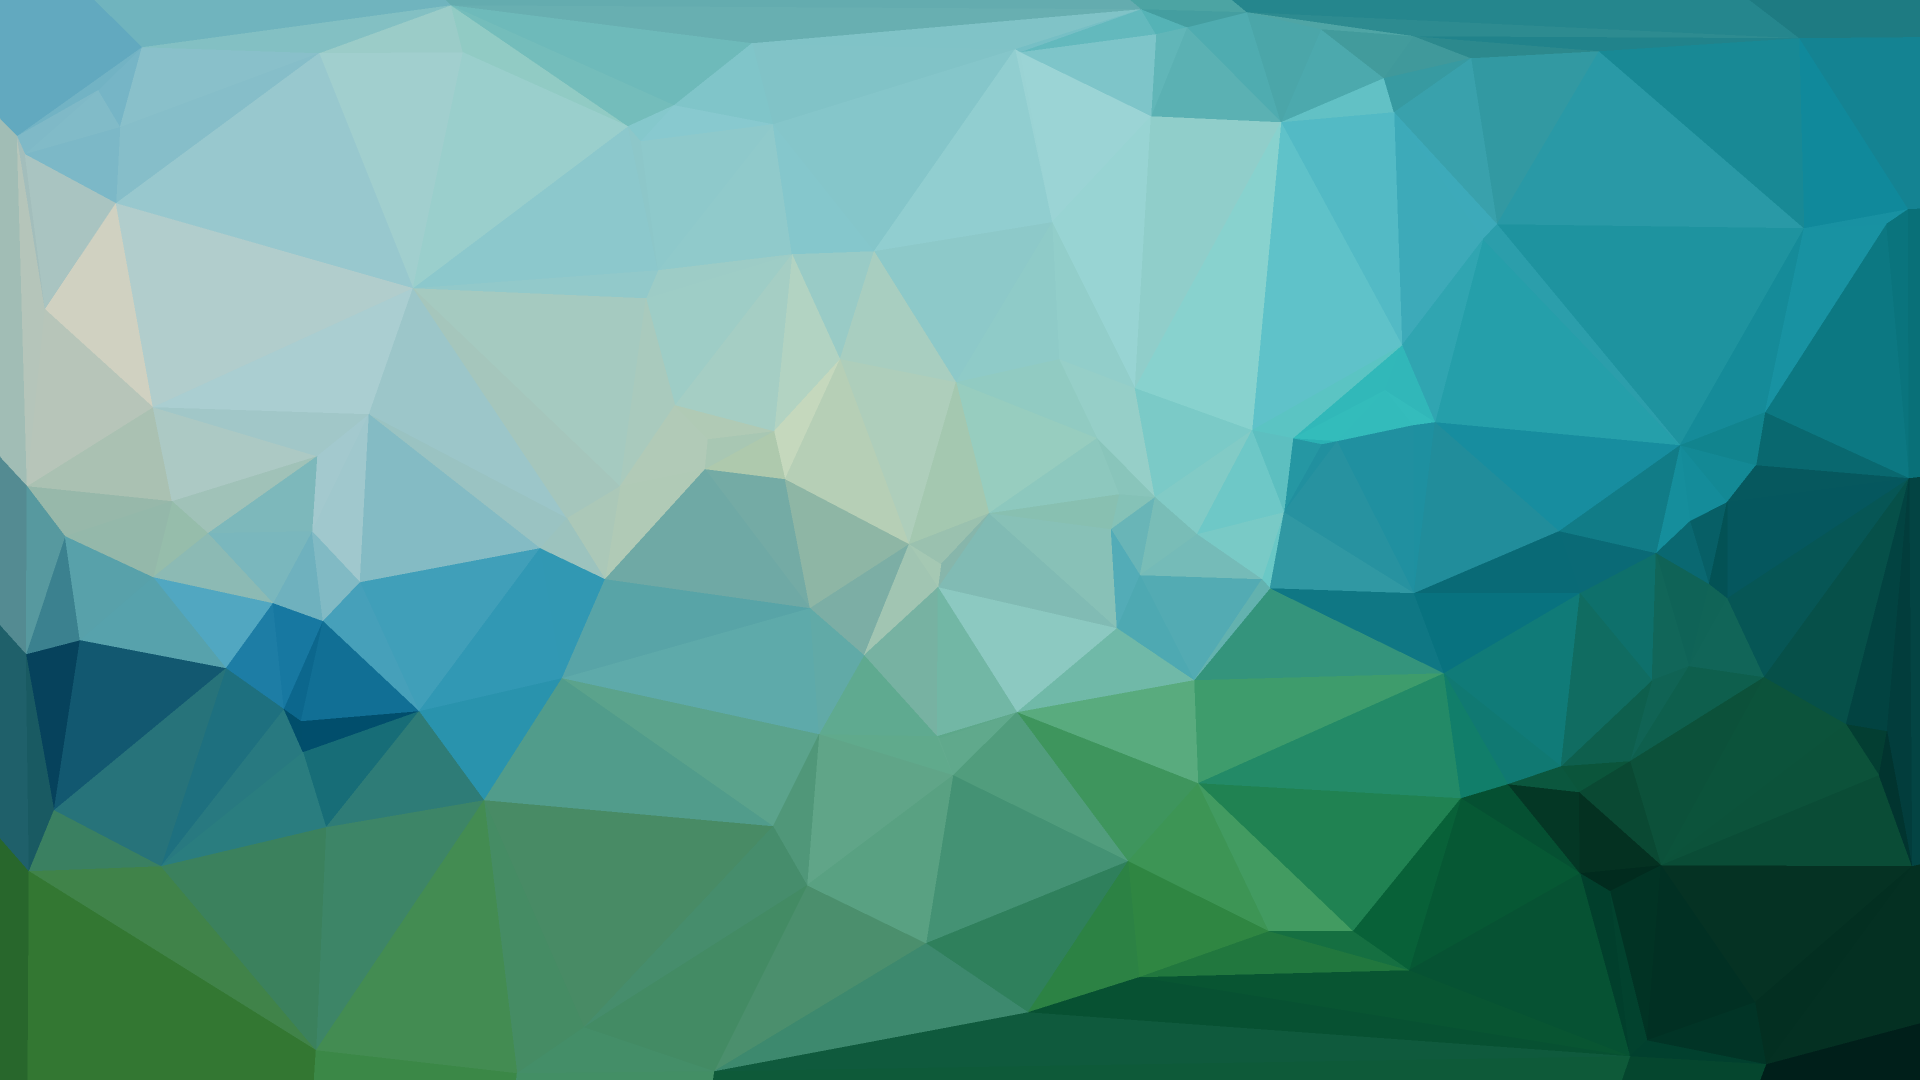 Wallpaper geometric color 33 1080p hd by airworldking on - Geometric wallpaper colorful ...